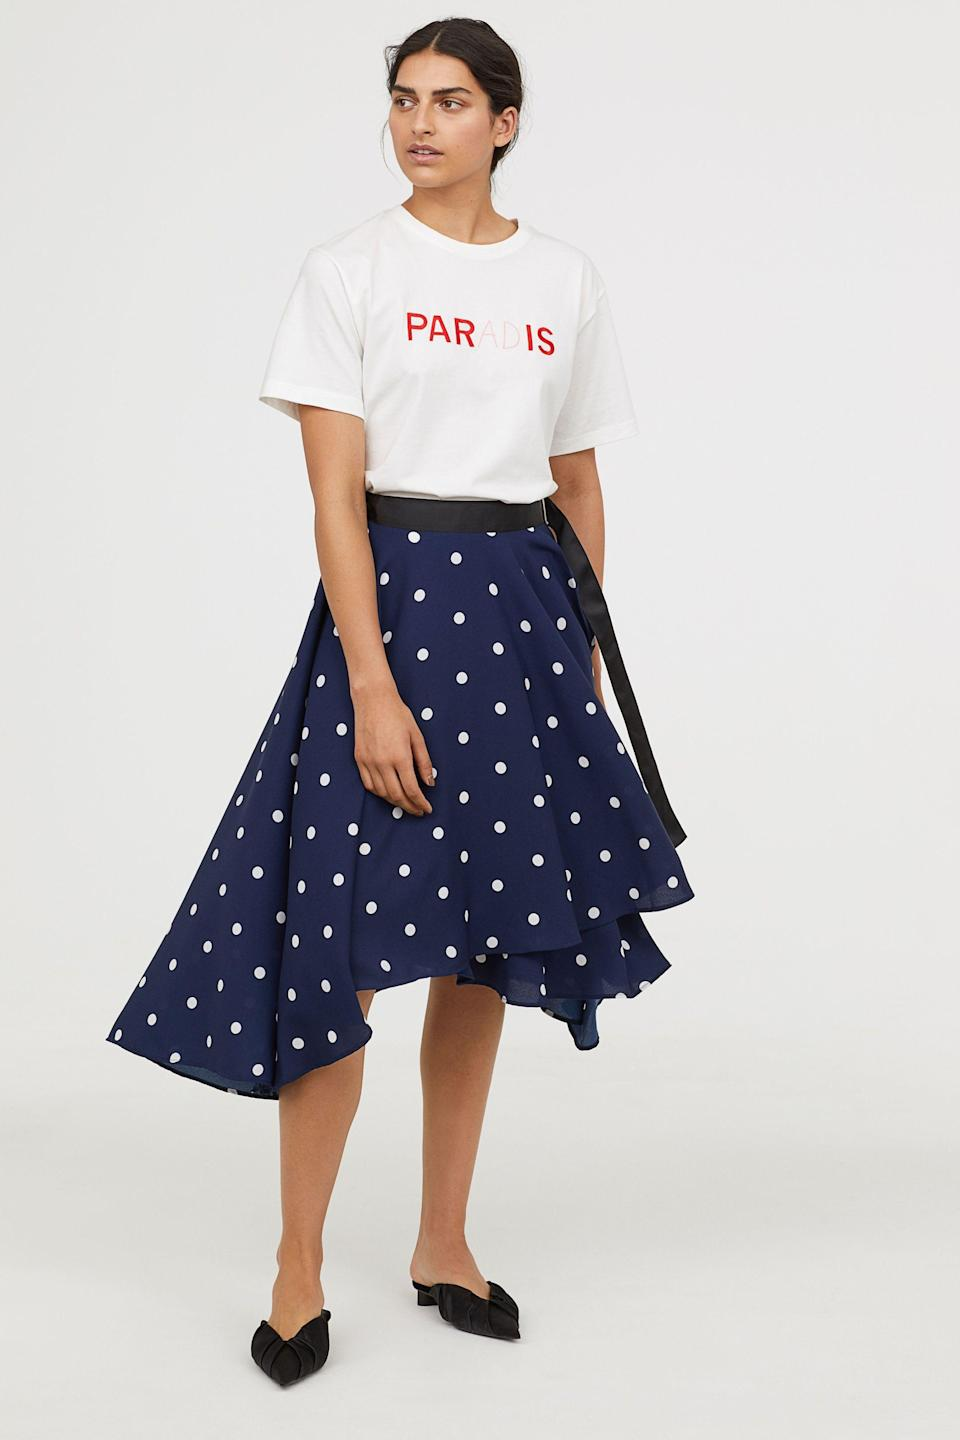 Swingy skirts are just more exciting. Available in sizes 0 to 10.